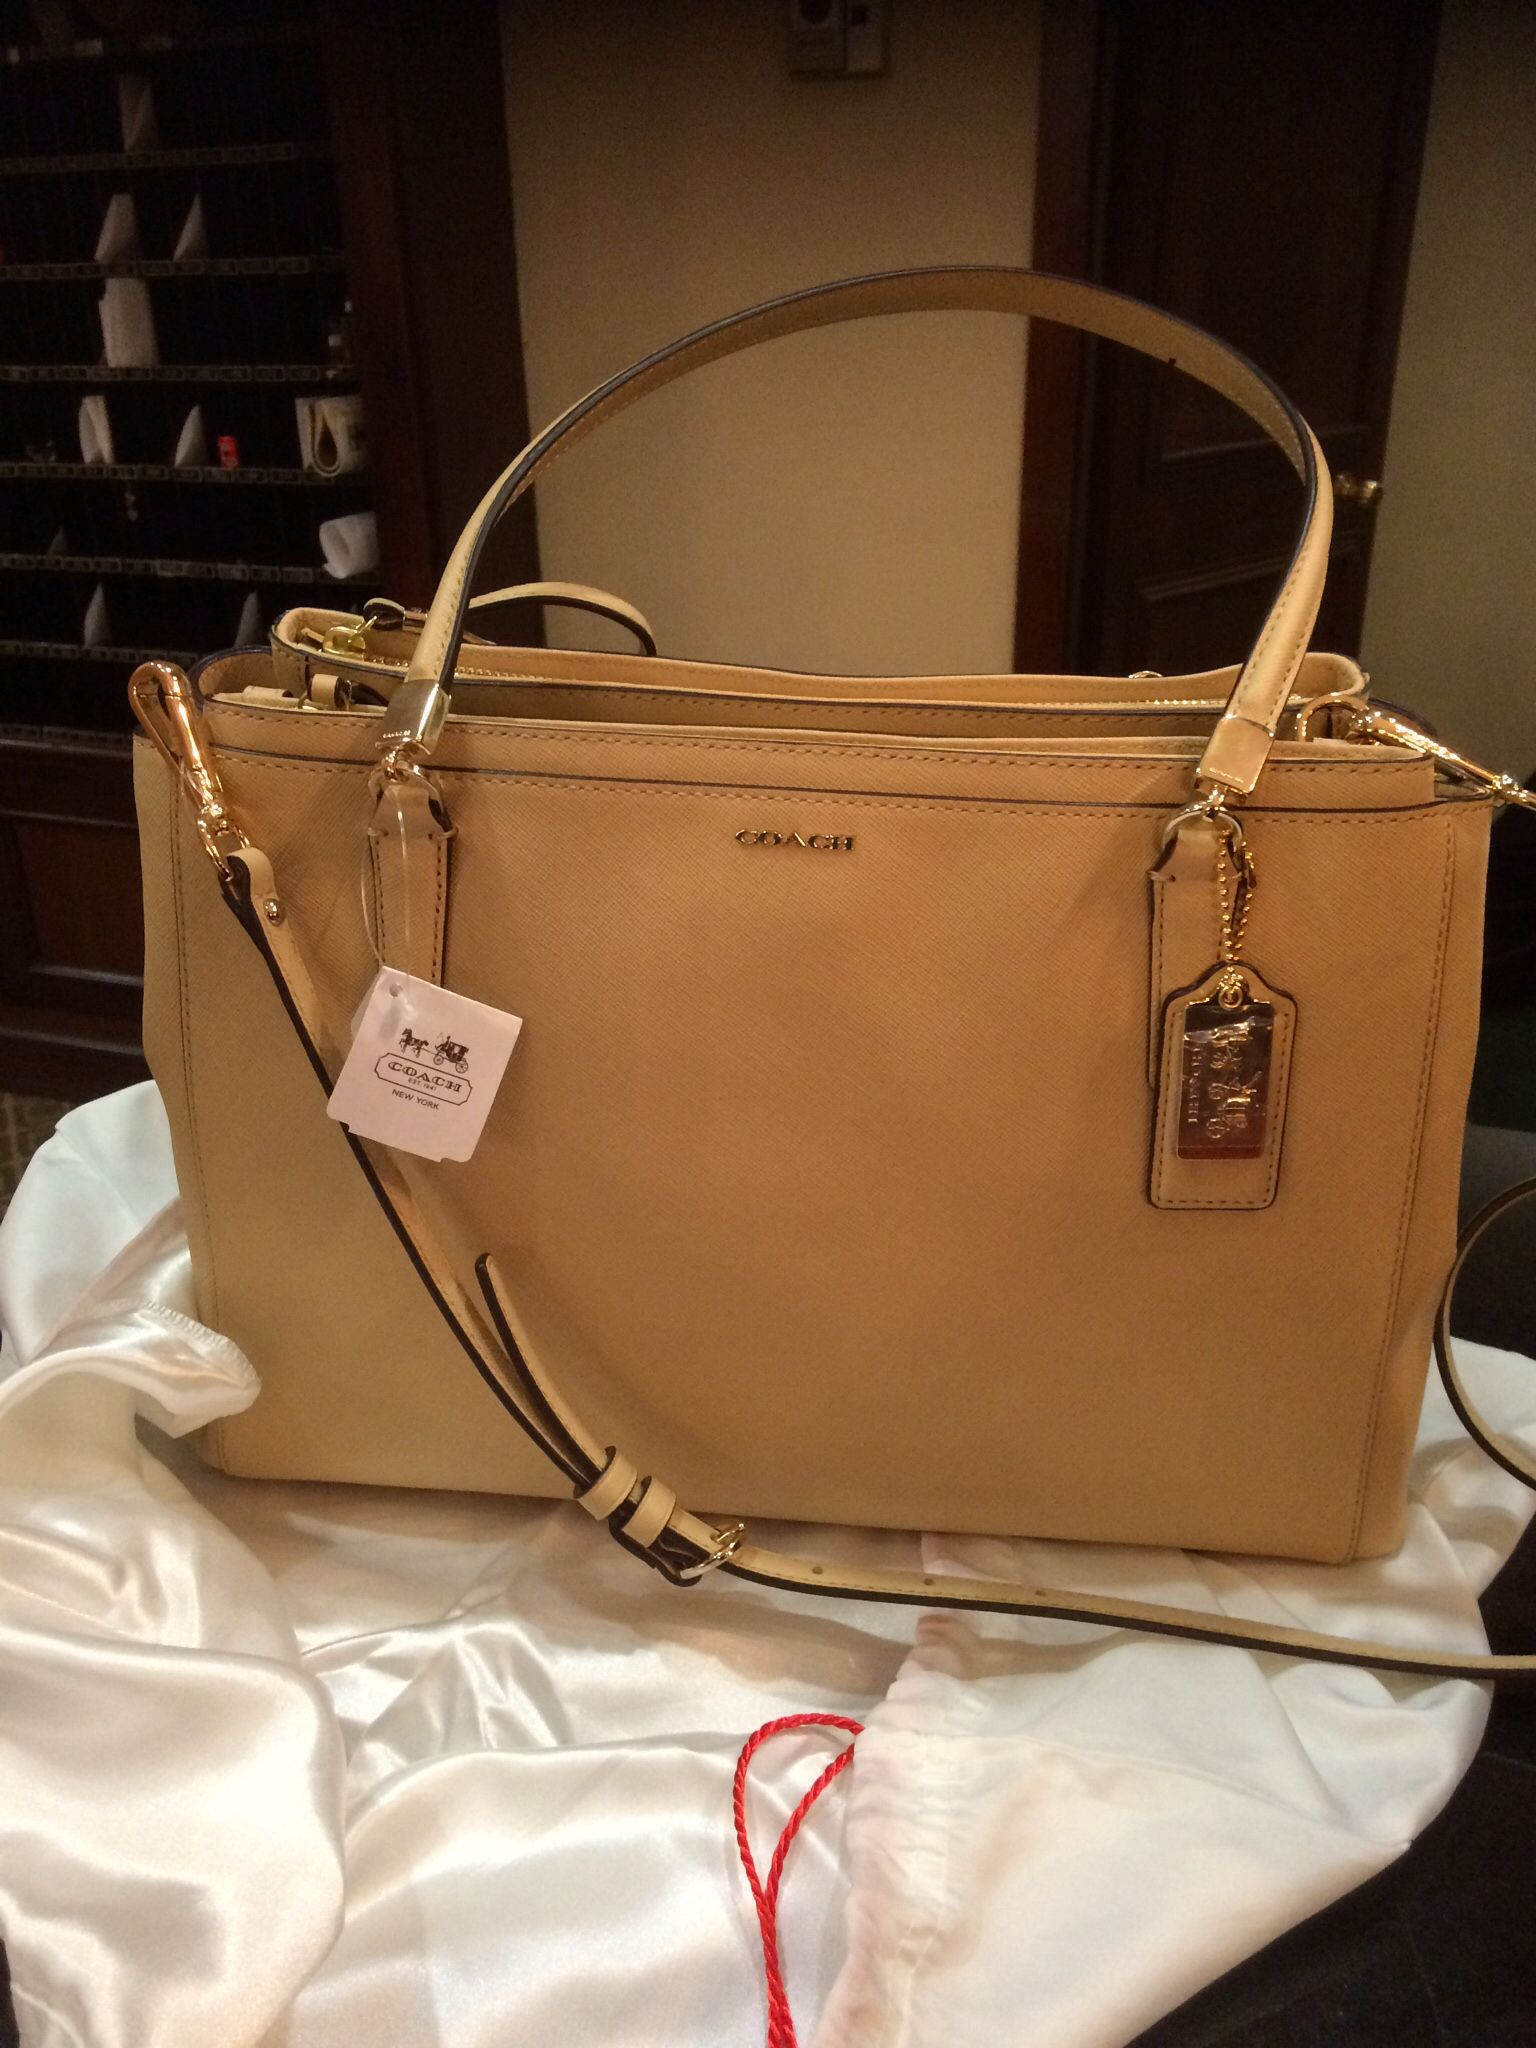 44f9a437e4e78 ... My favorite bag of all - Coach Madison Christie Carryall ToteSatchel  Saffiano Leather in ...